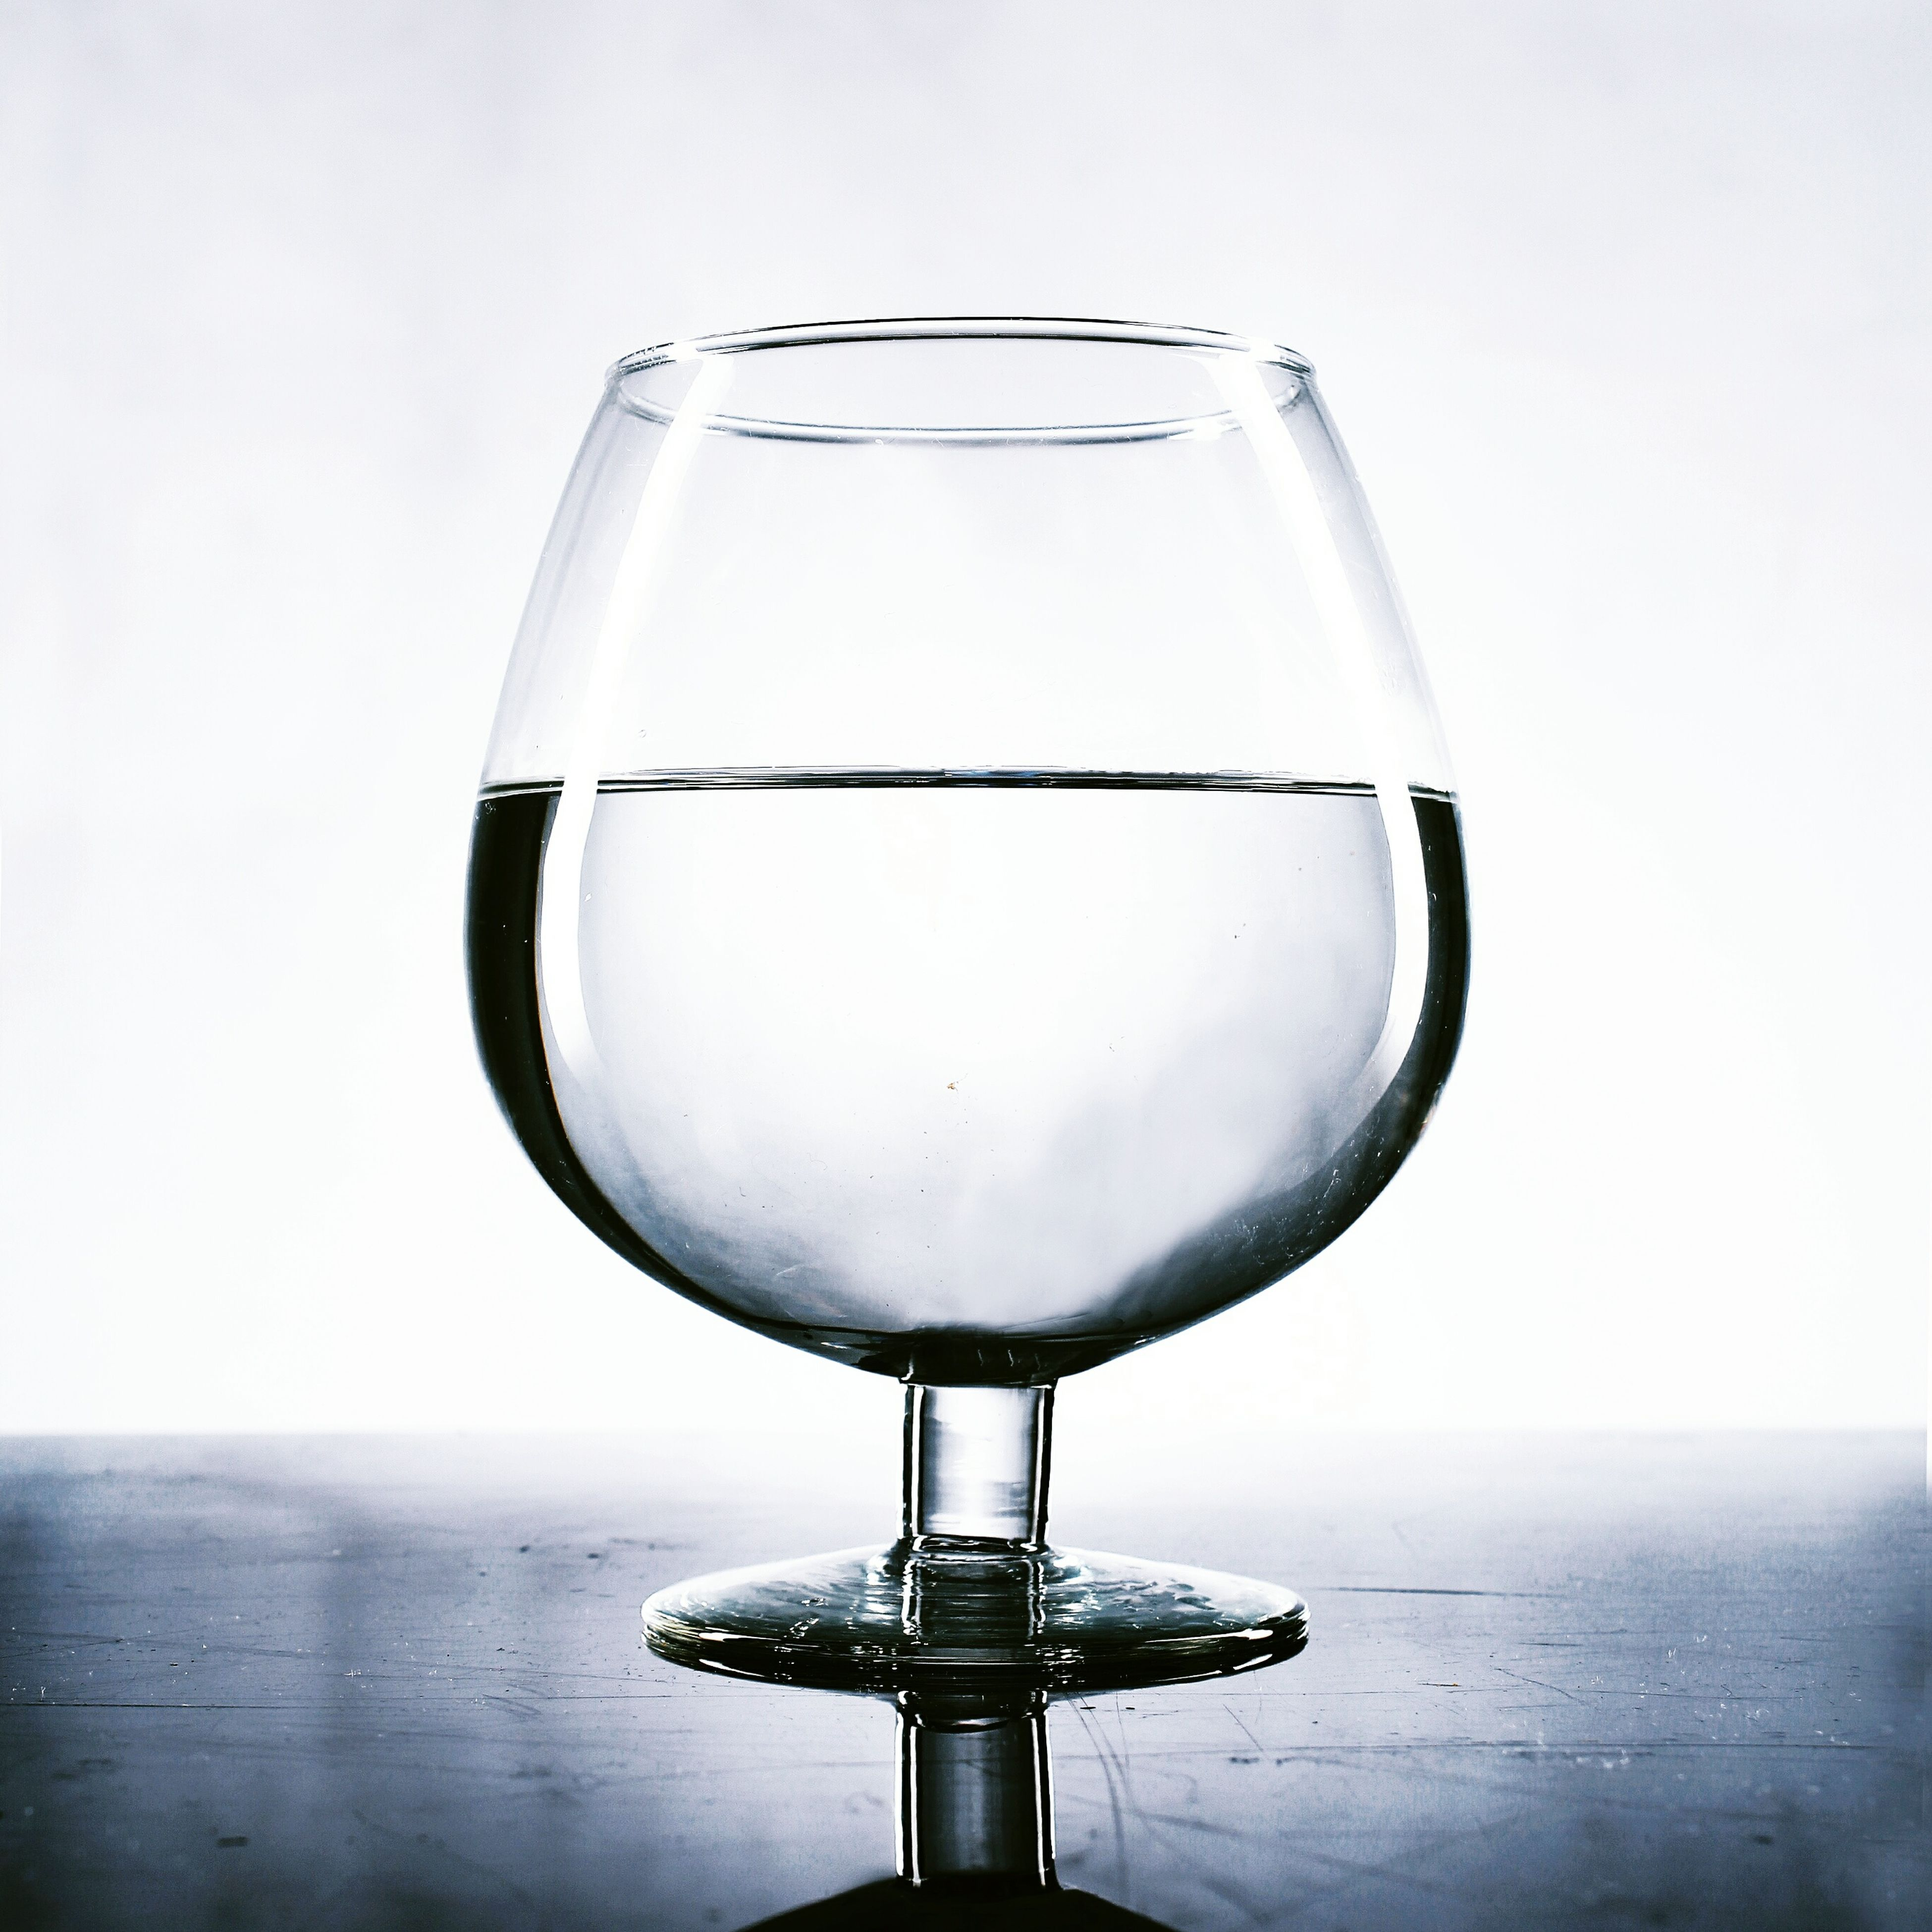 transparent, glass - material, close-up, water, refreshment, drinking glass, wineglass, drink, reflection, food and drink, focus on foreground, wine, indoors, single object, drop, glass, alcohol, sky, copy space, clear sky